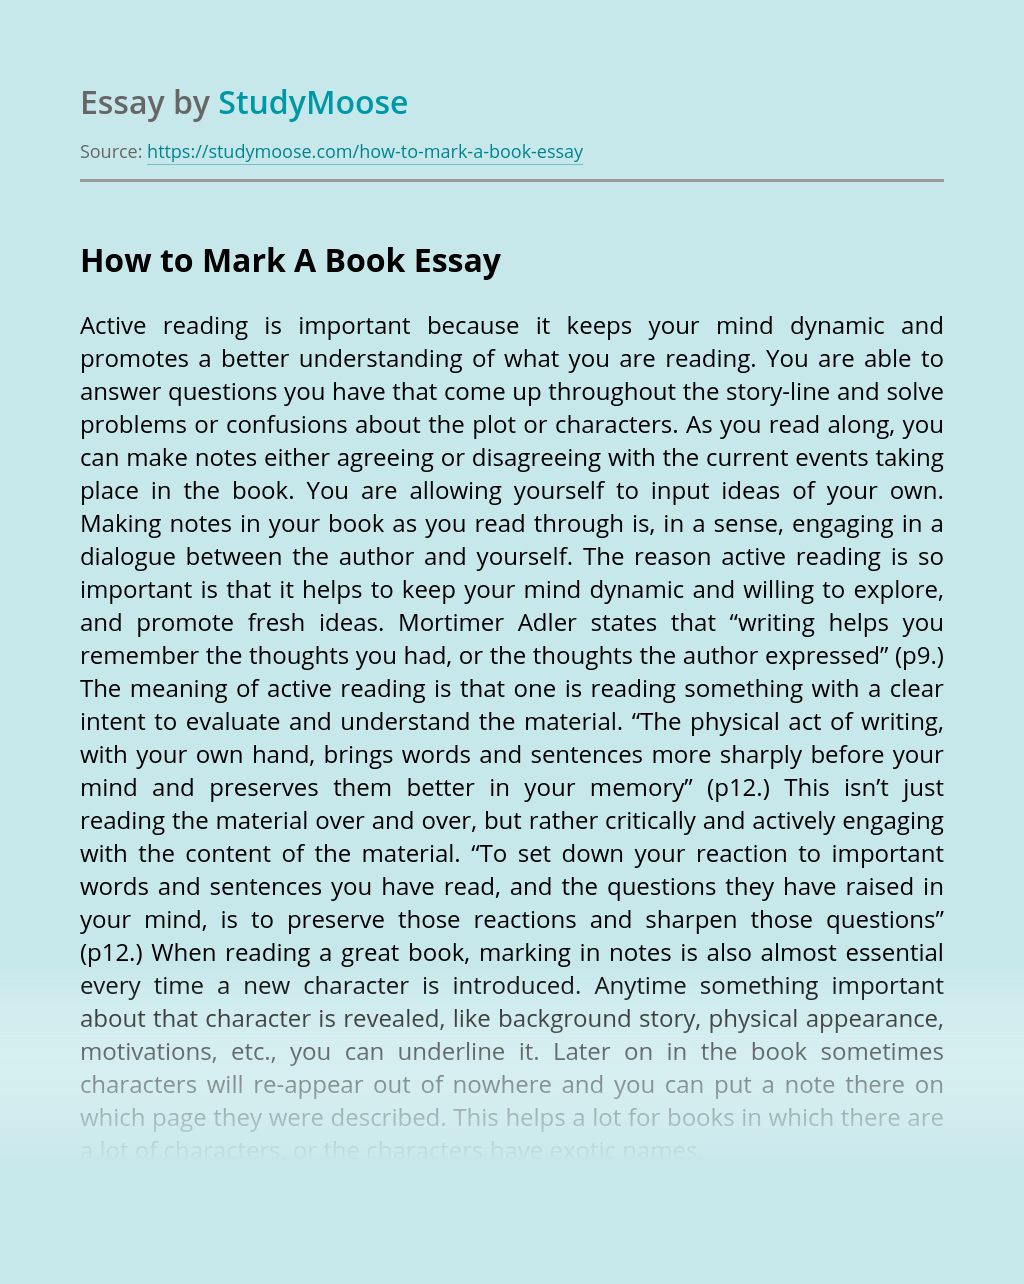 How to Mark A Book?